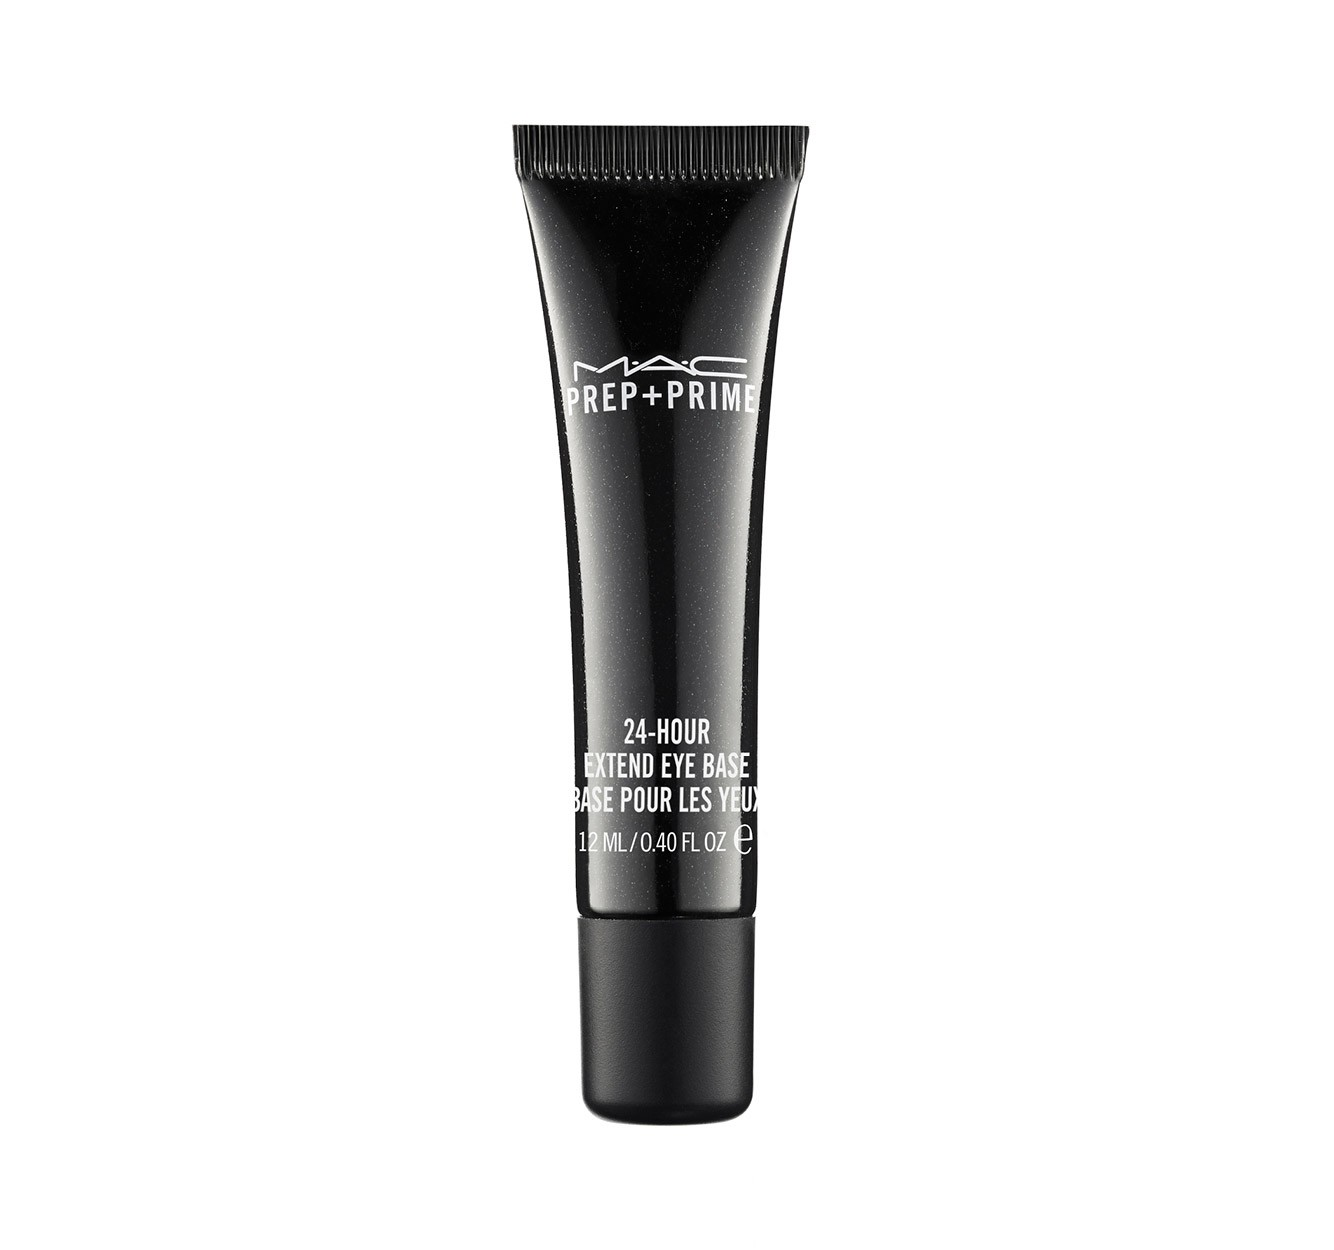 База для теней PREP + PRIME 24-HOUR EXTEND EYE BASE от MAC